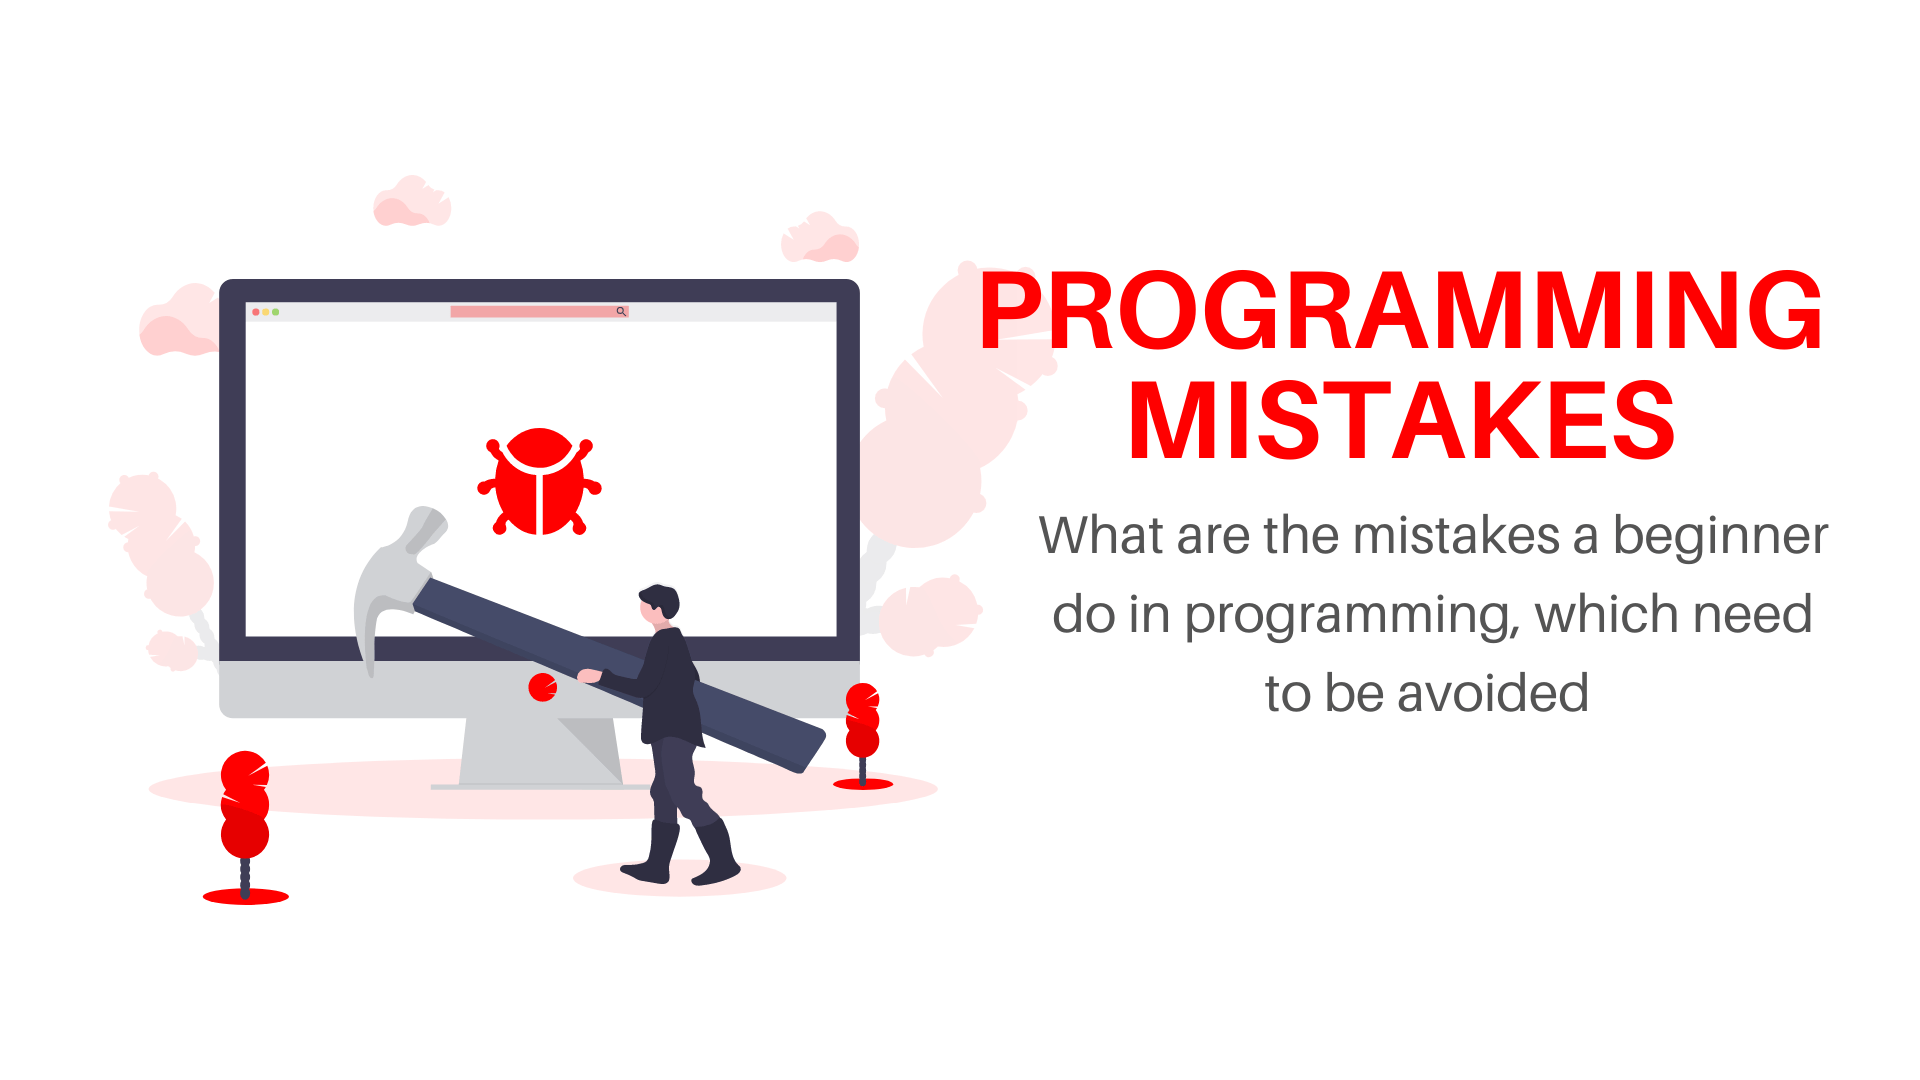 What are the mistakes a beginner do in programming which need to be avoided